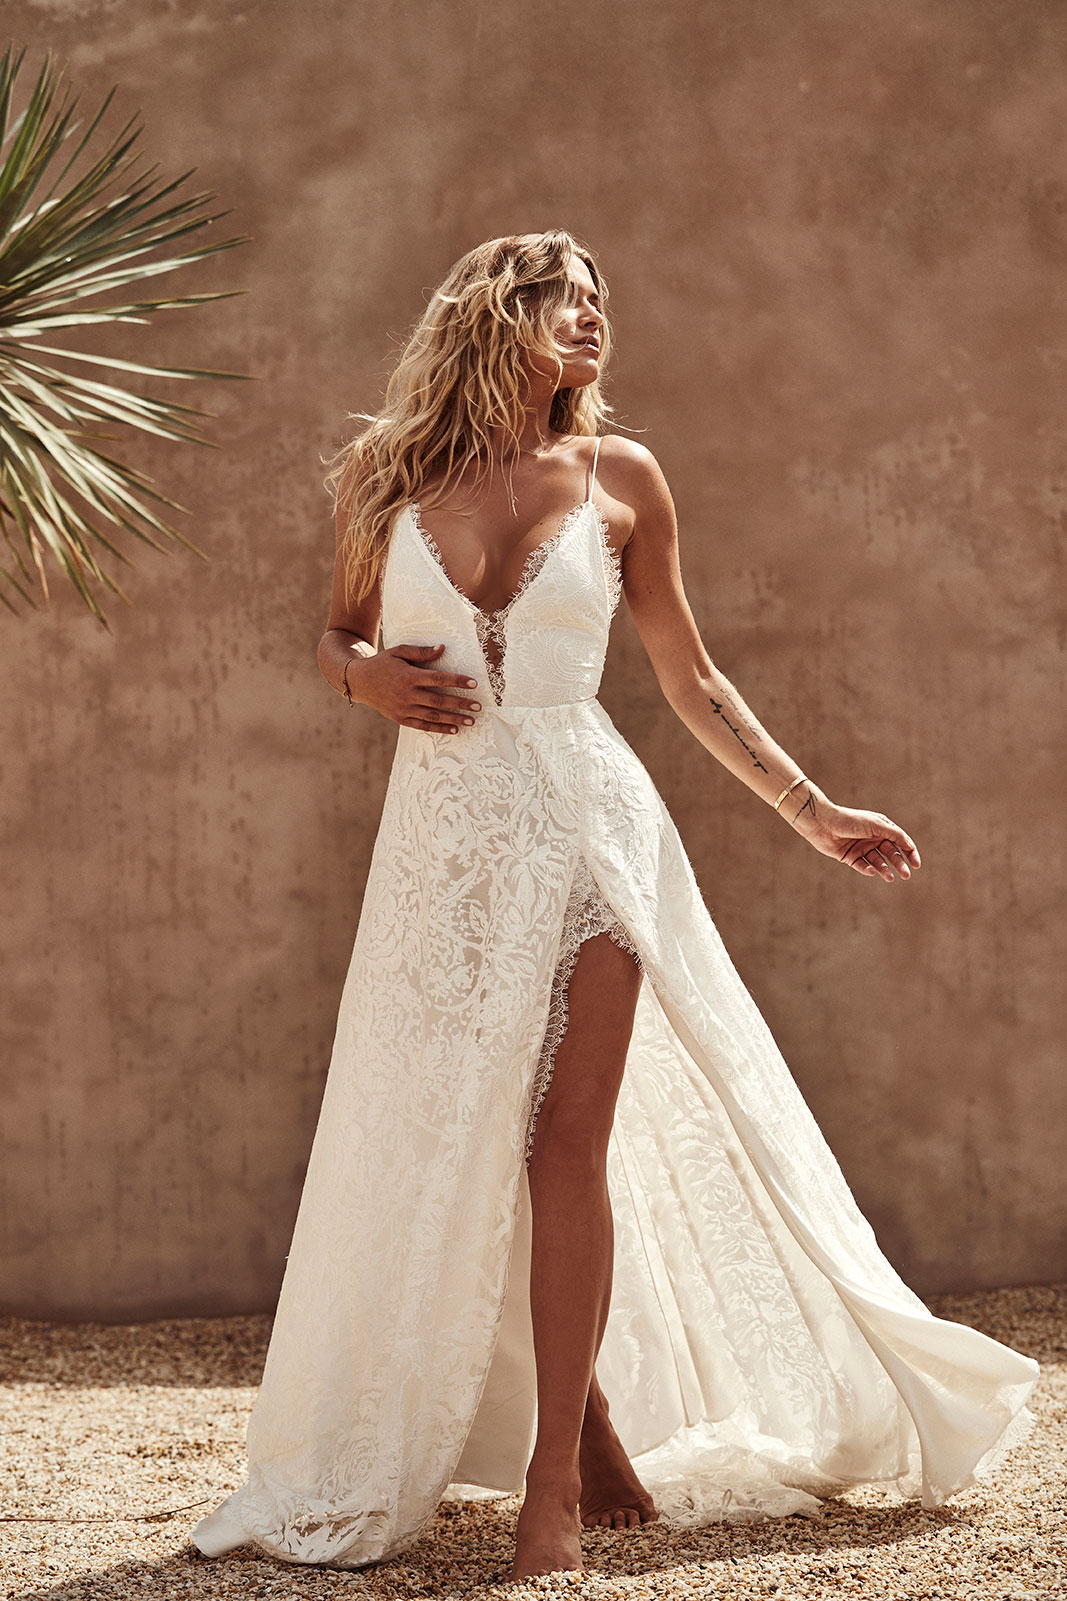 Darling wedding dress by GRACE LOVES LACE | LOVE FIND CO. Bridal dress directory